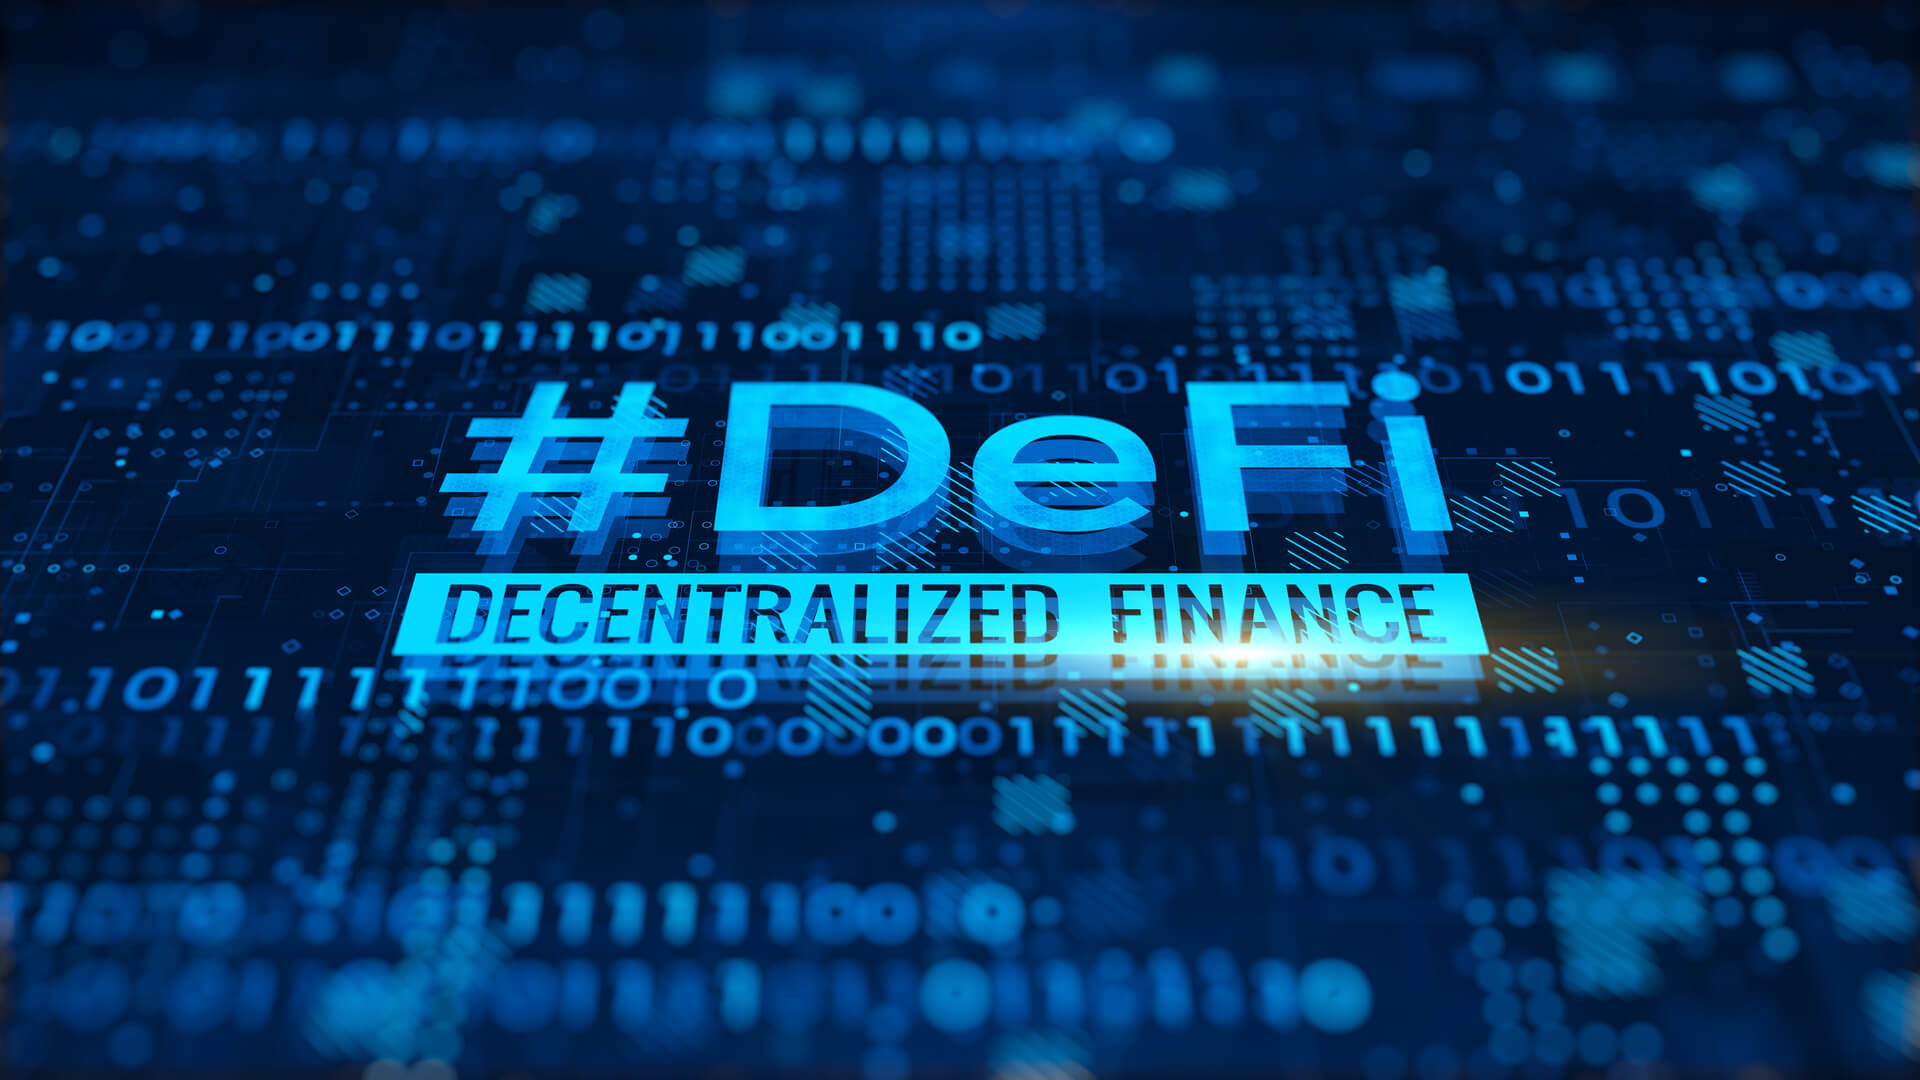 These European DeFi Companies Are Changing the Finance Industry - AI Global Media Ltd